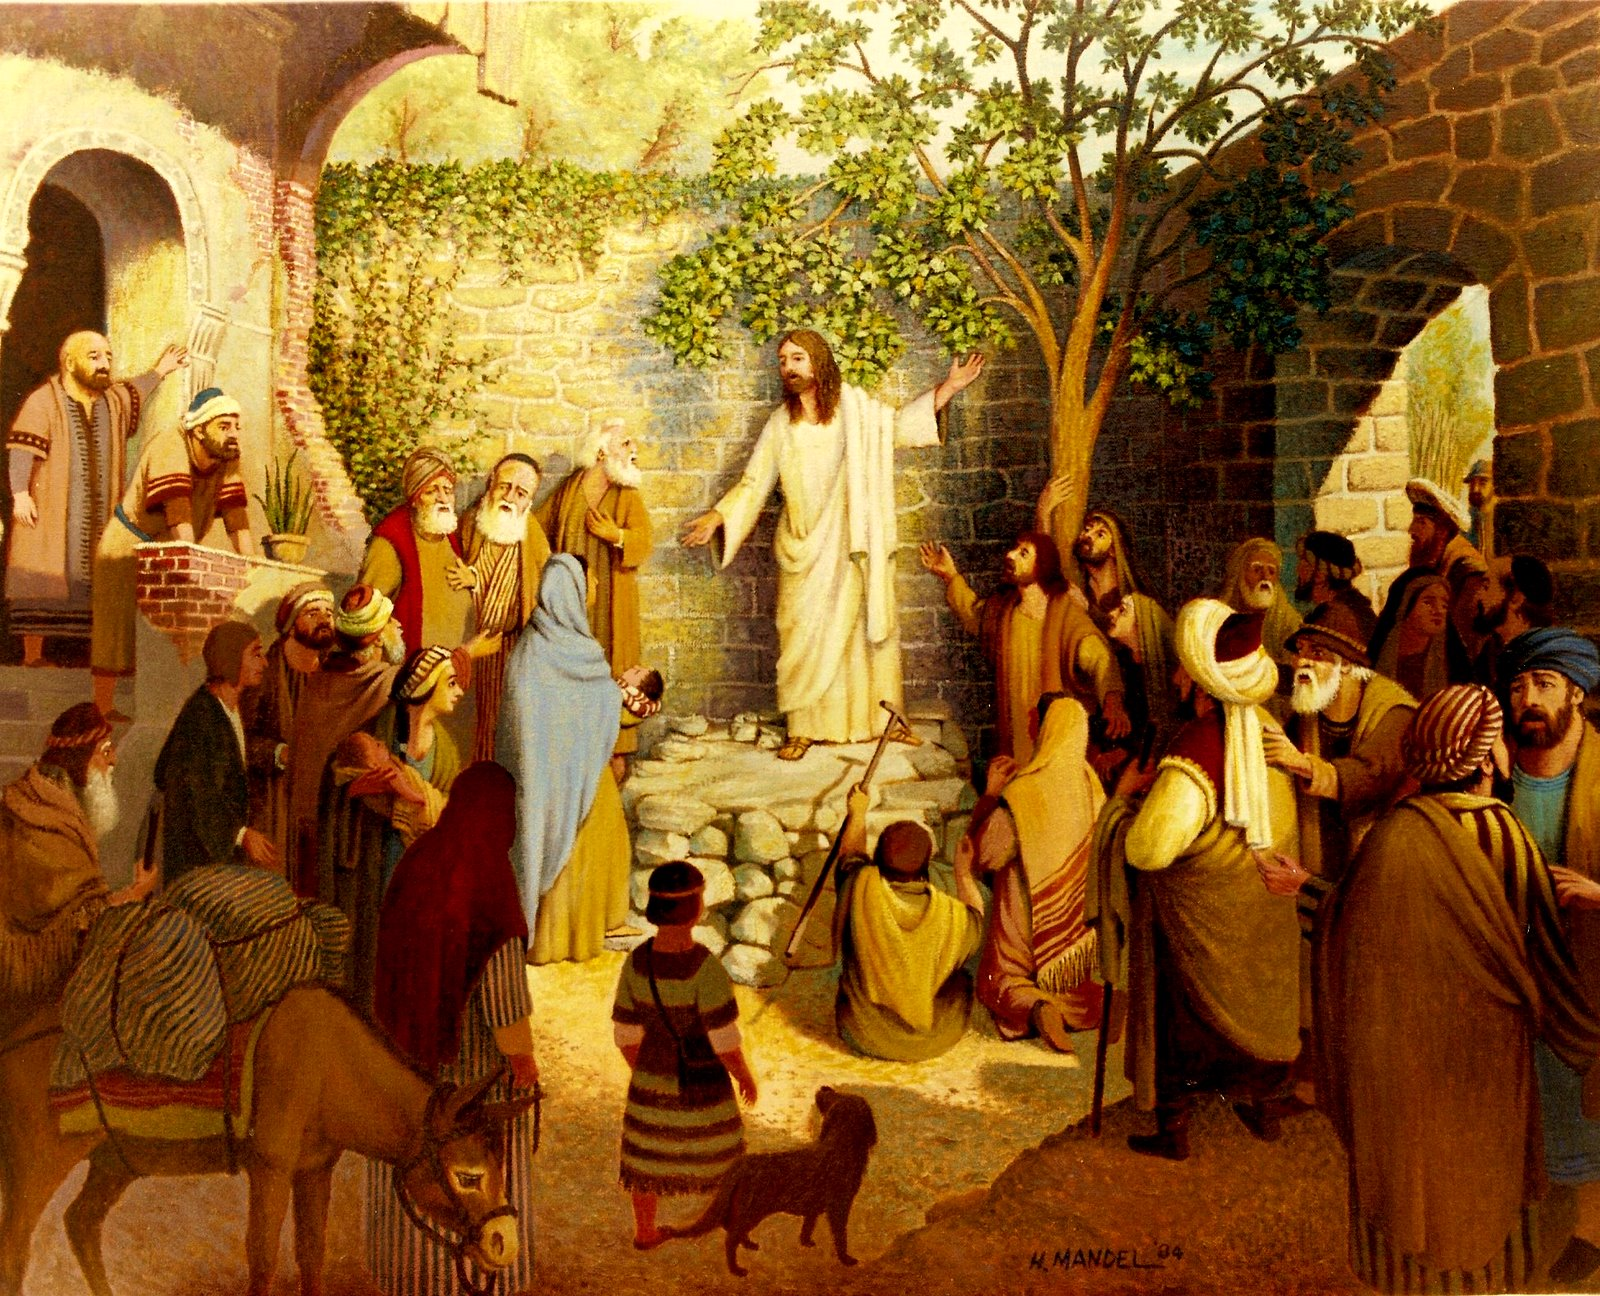 """jesus and christian gospel When jesus began his public ministry, he summarized his entire message this way: """"the time is fulfilled, the kingdom of god is at hand repent and believe the gospel"""" (mark 1:15) a new kingdom, a new nation, had been founded and he was now calling people to become citizens of it."""